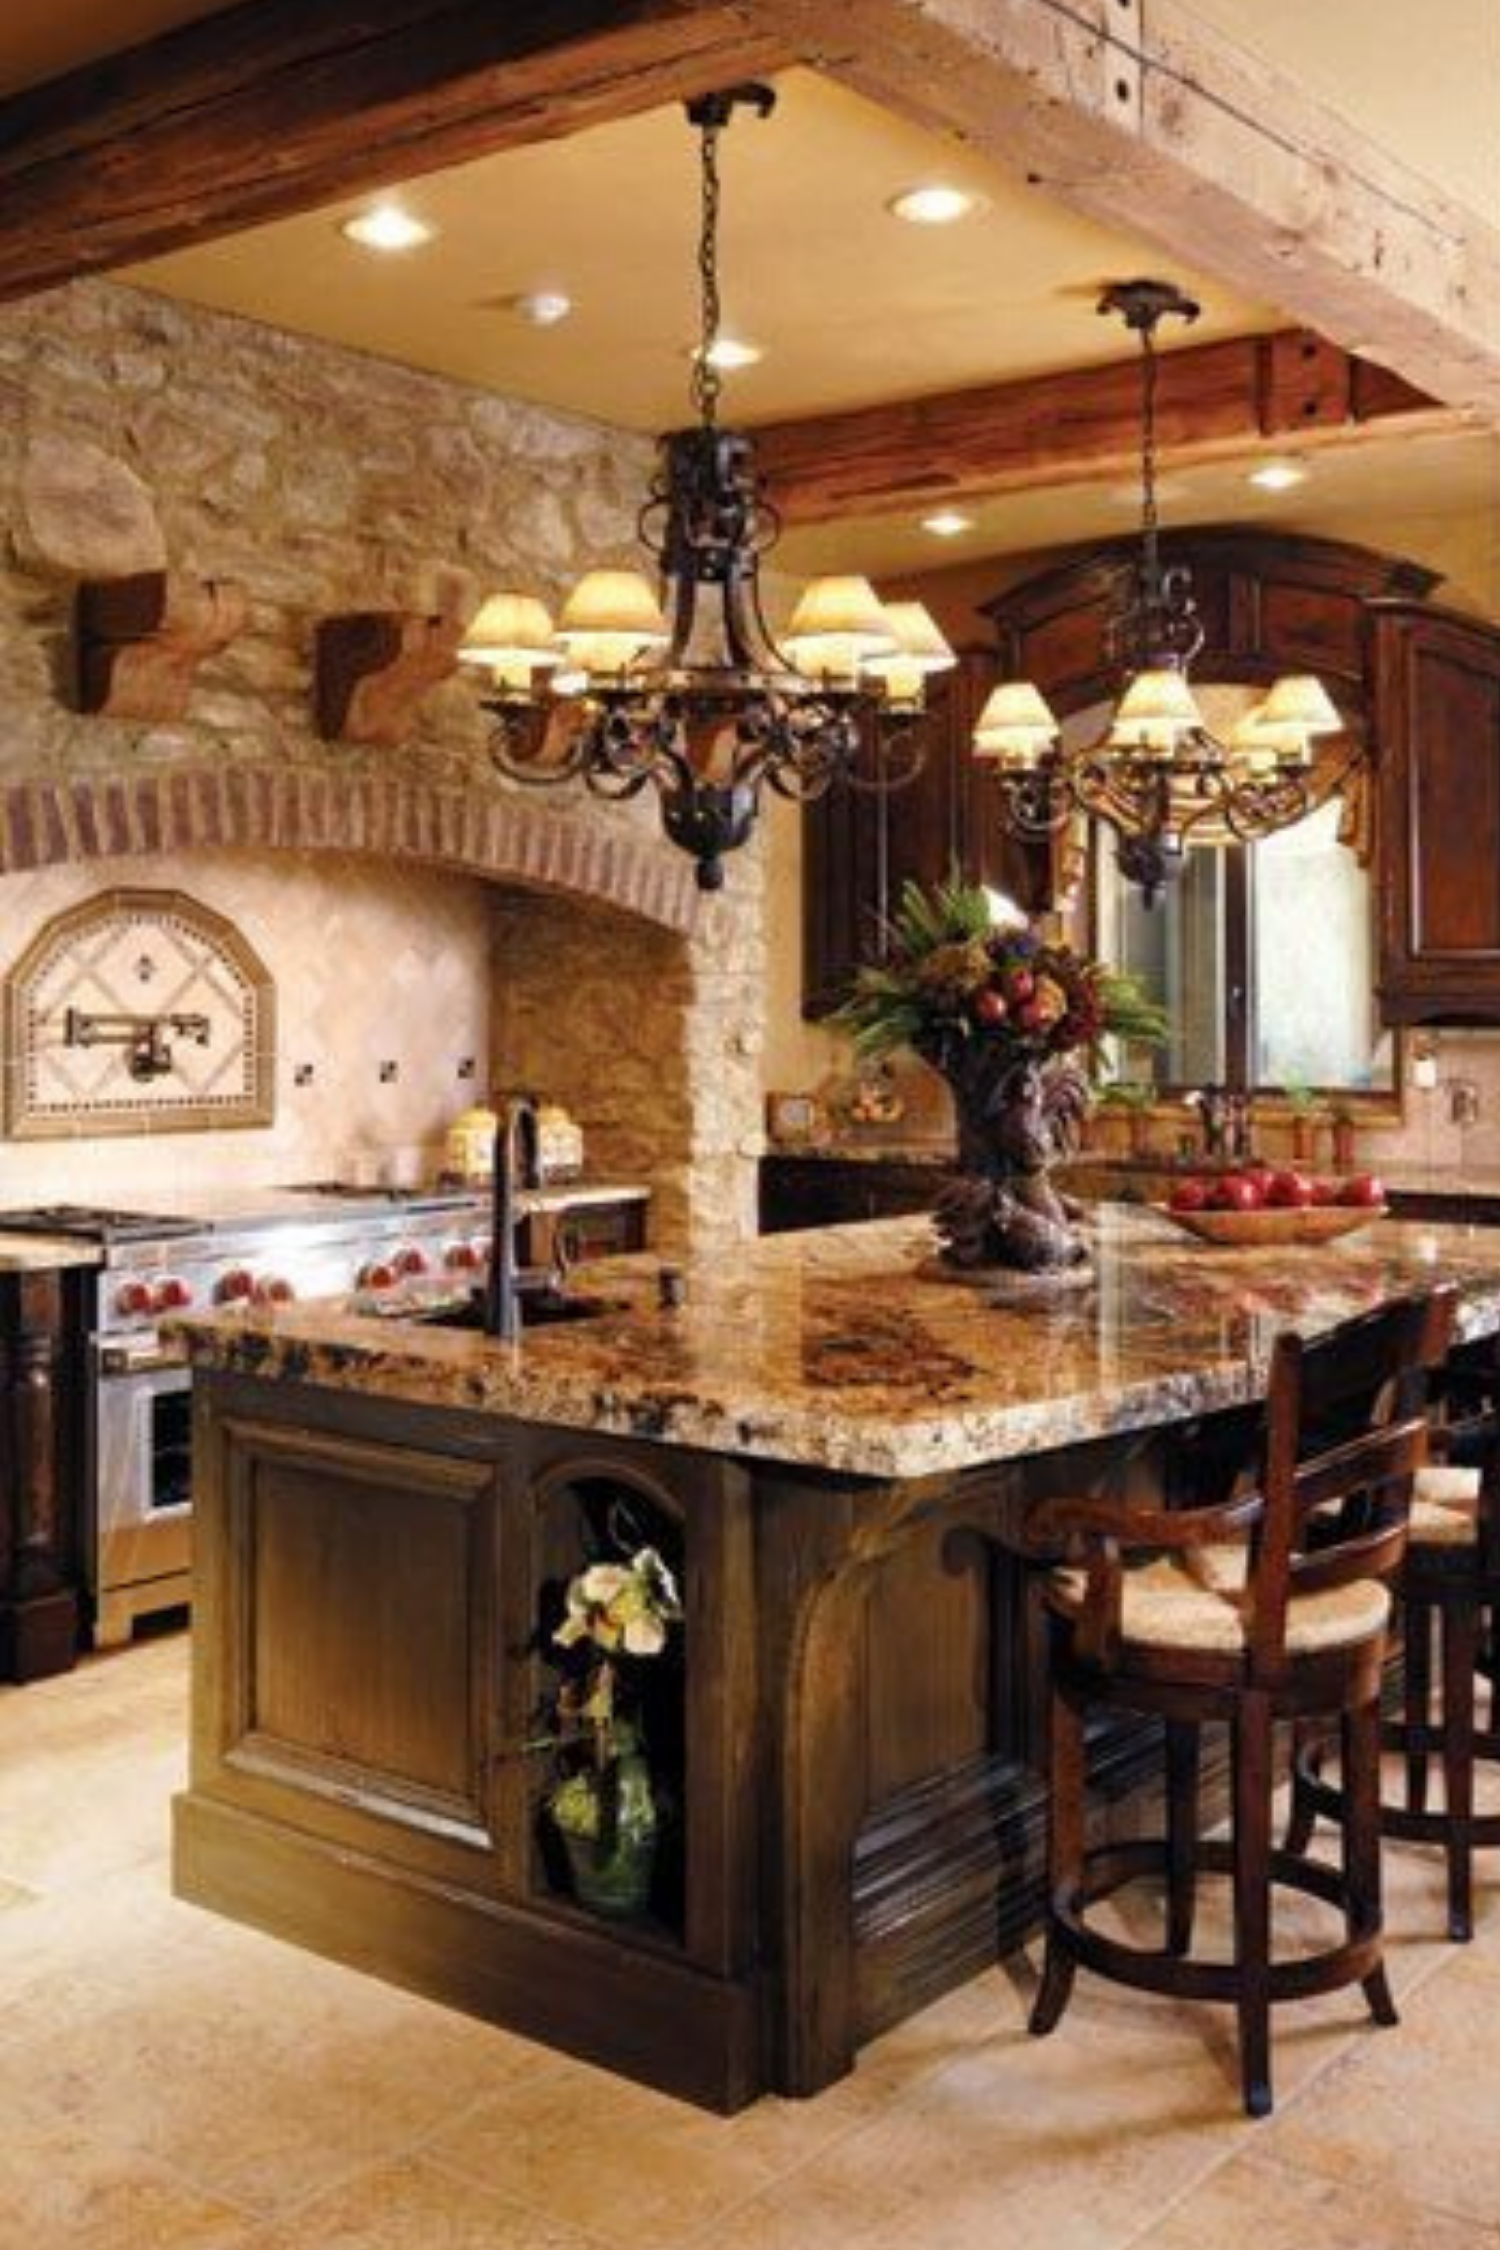 rustic kitchen ideas in 2020 tuscan kitchen design italian kitchen decor italian home decor on kitchen decor themes rustic id=14380